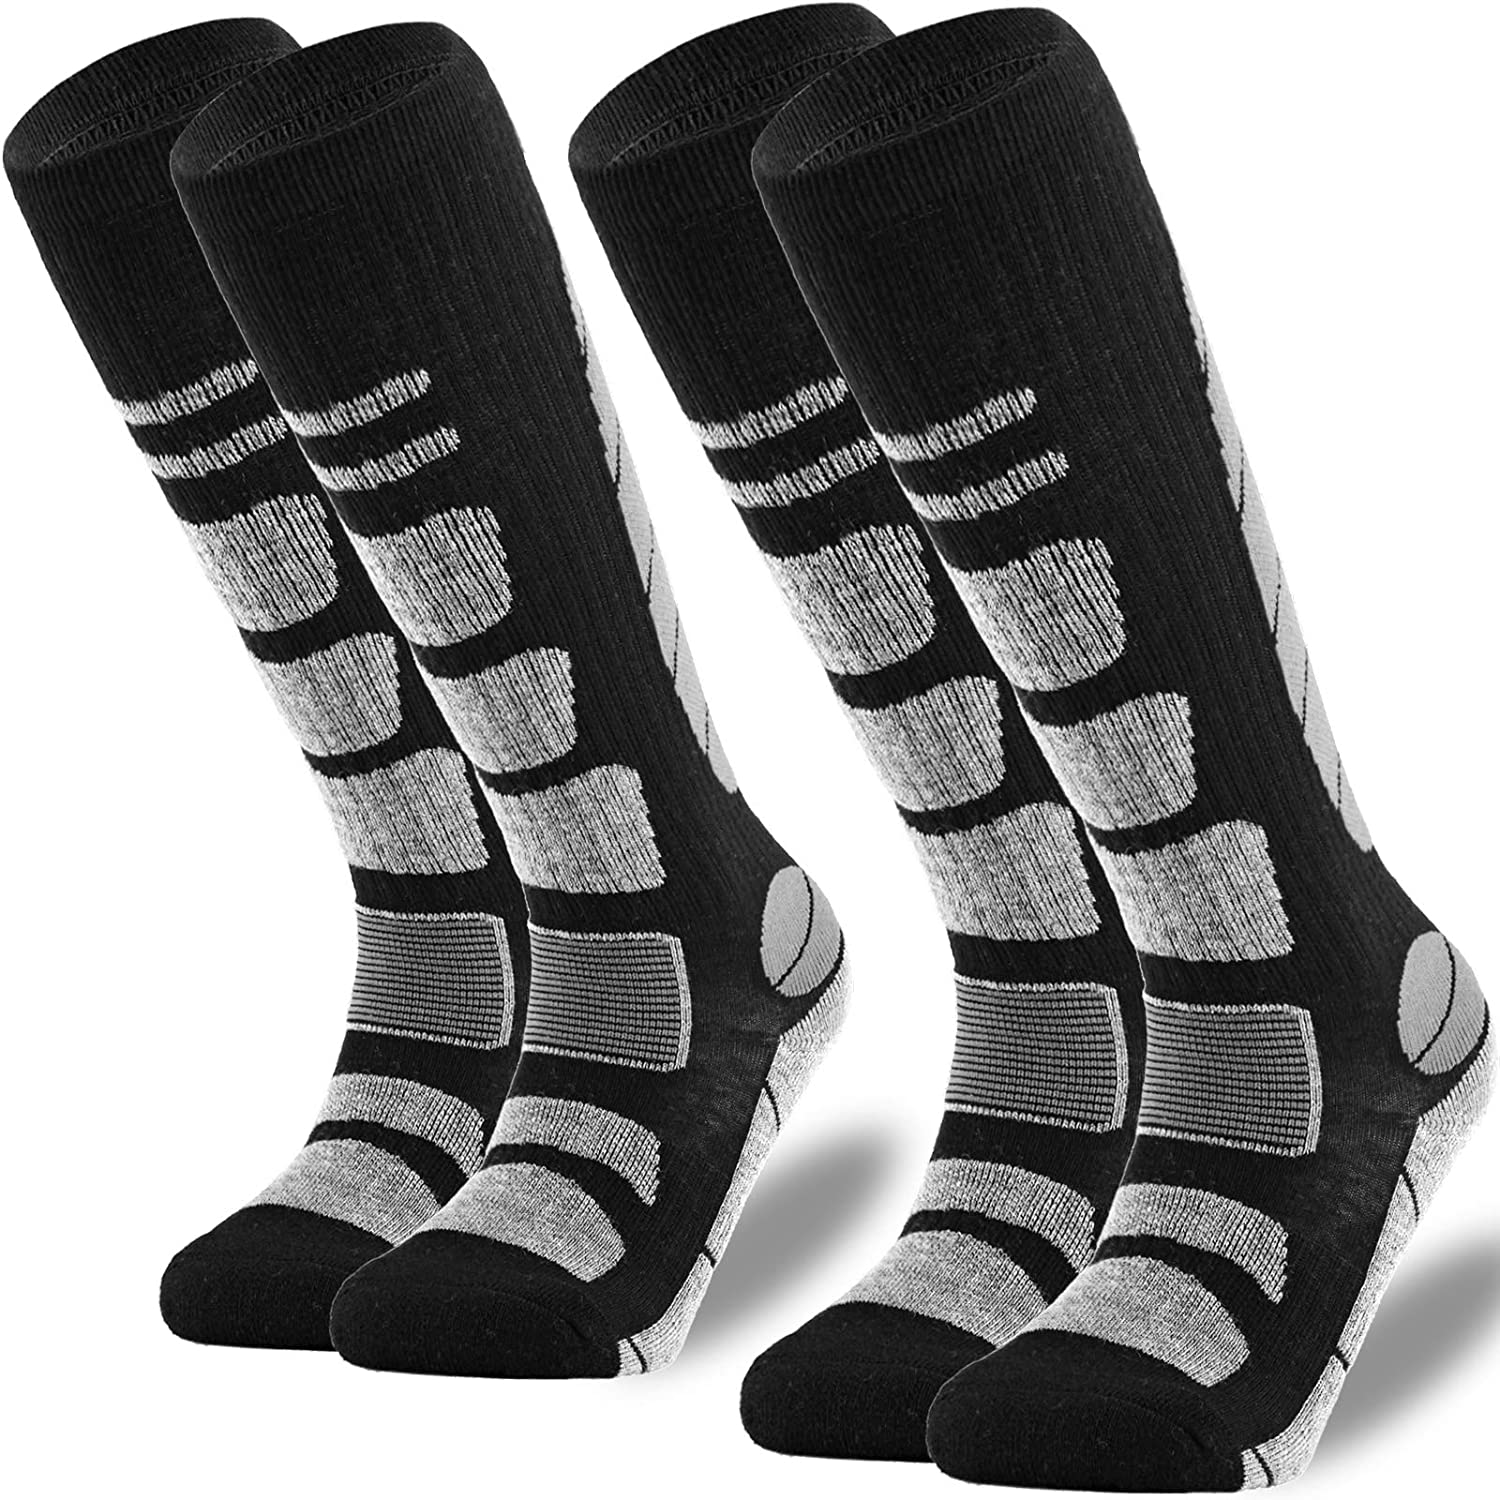 Max 68% OFF Ski Socks 2 Pairs Pack for Skiing Weather Sale item Snowboarding Cold W